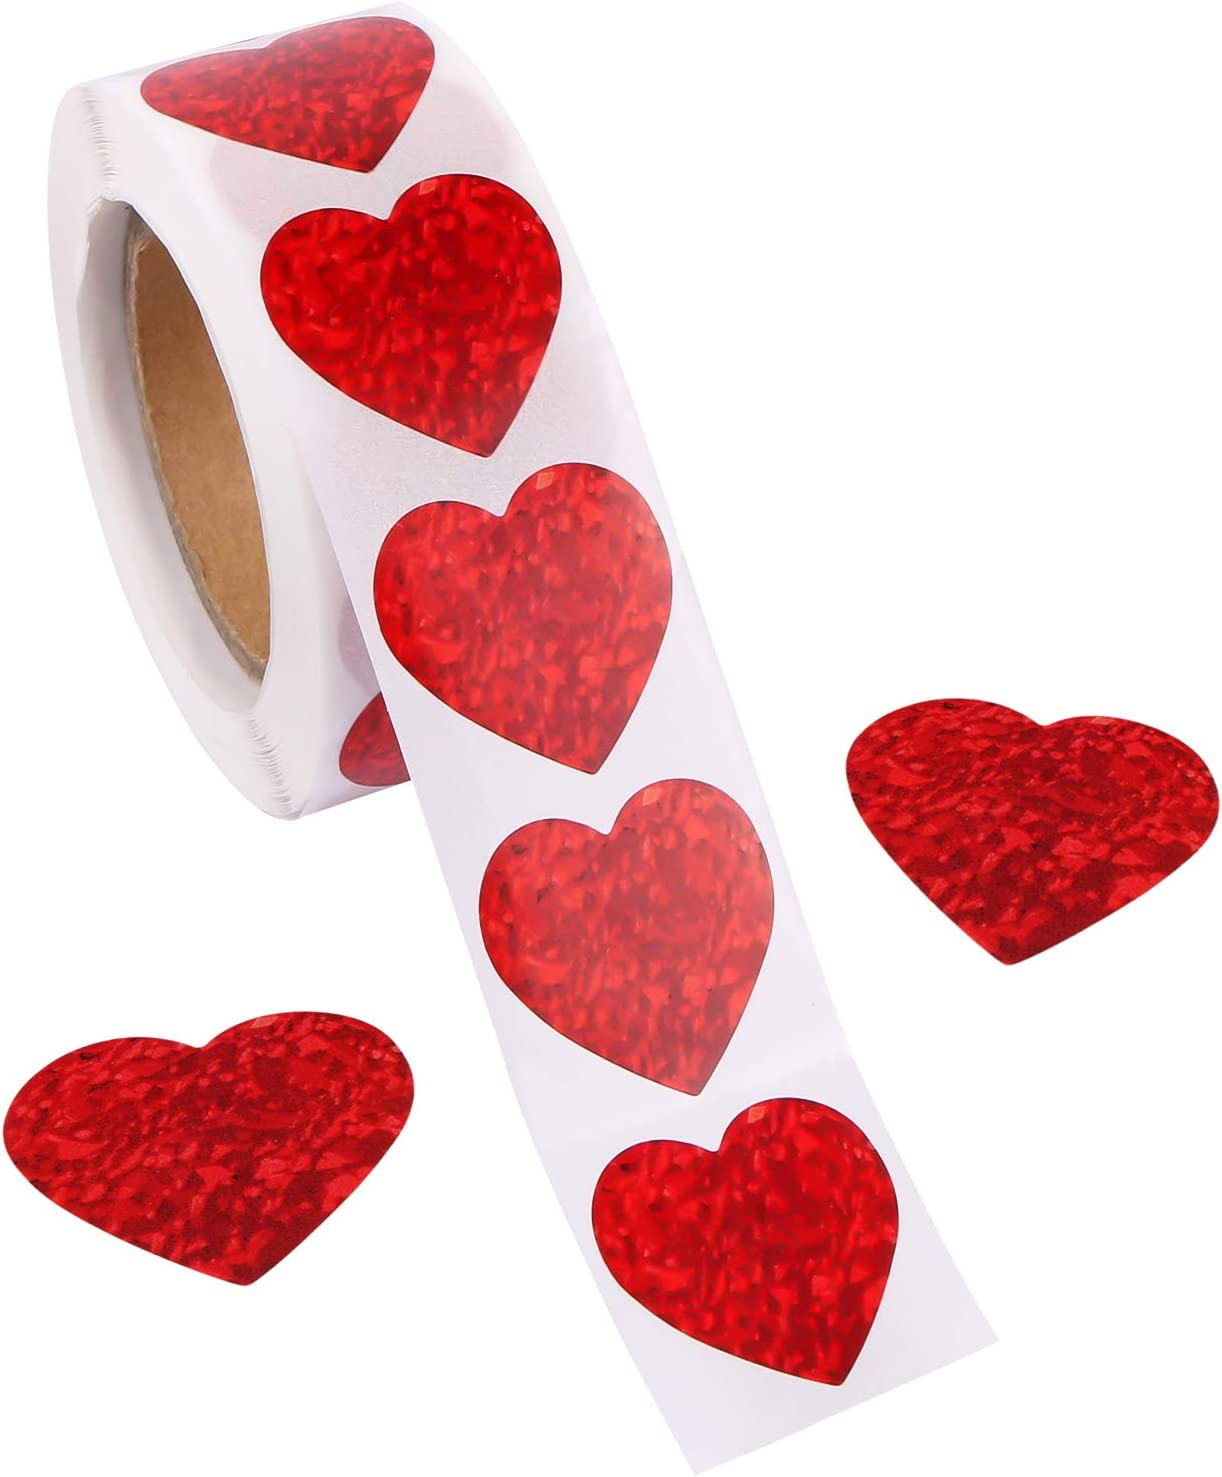 CABAX 1 inch Wide Glitter Heart Stickers Valentine's Love Decorative Stickers Valentine's Day Decorations Accessories,500 Pieces (1 Roll)